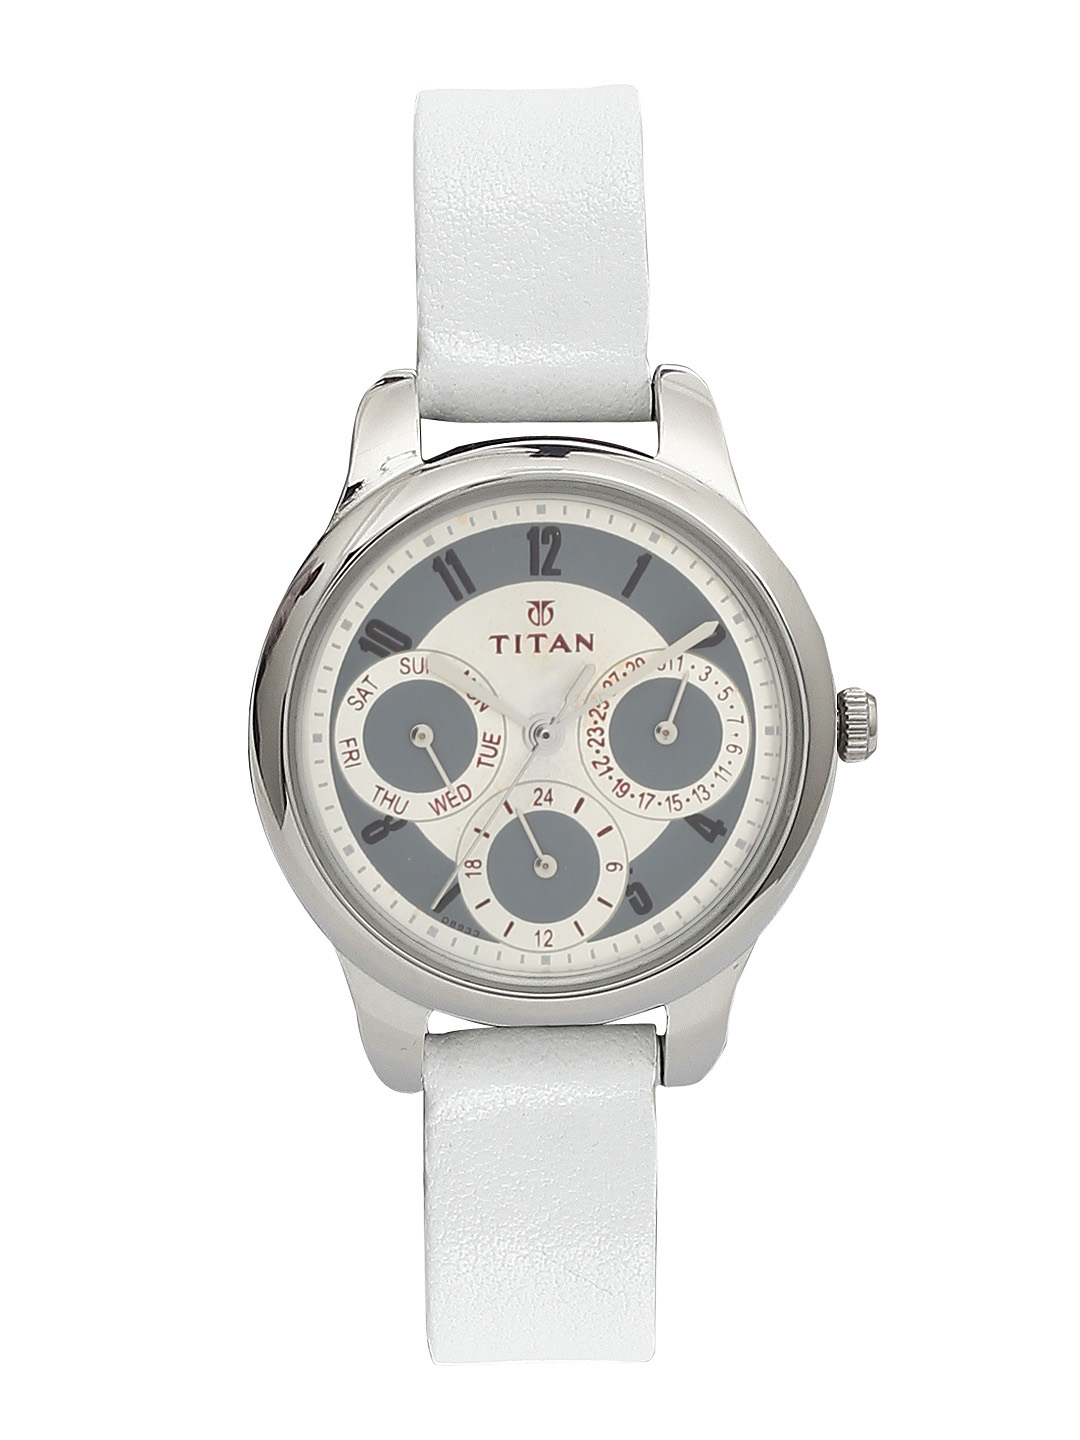 Titan Girls Watches Price